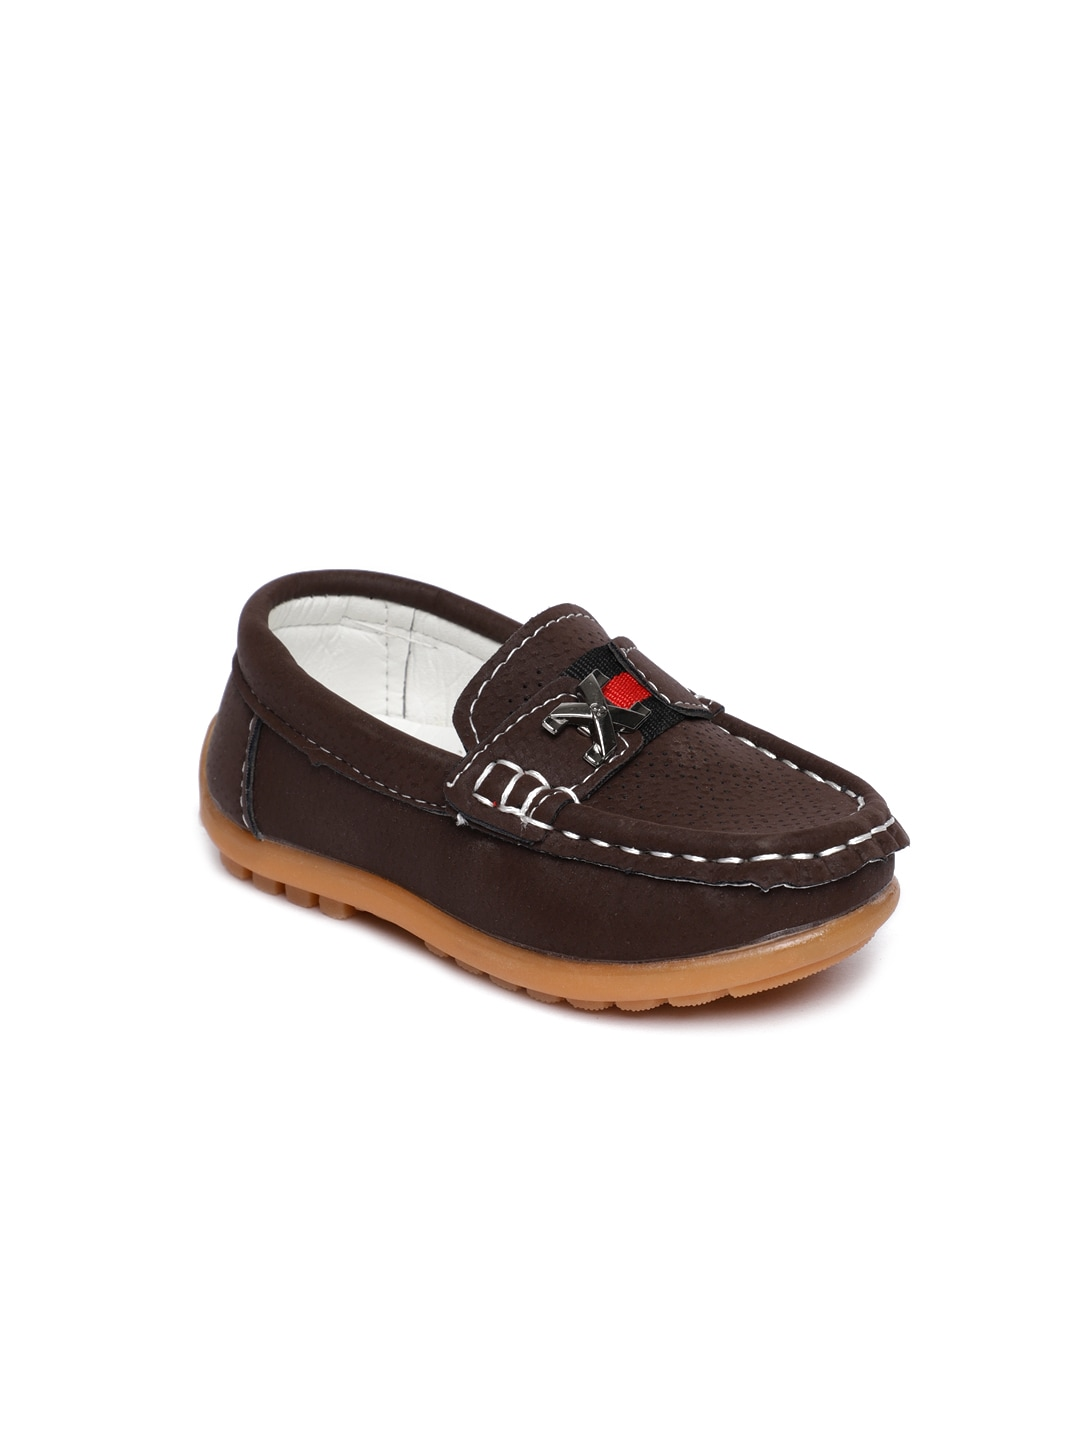 39237dcccc7 Kittens Boys Shoes - Buy Kittens Boys Shoes online in India